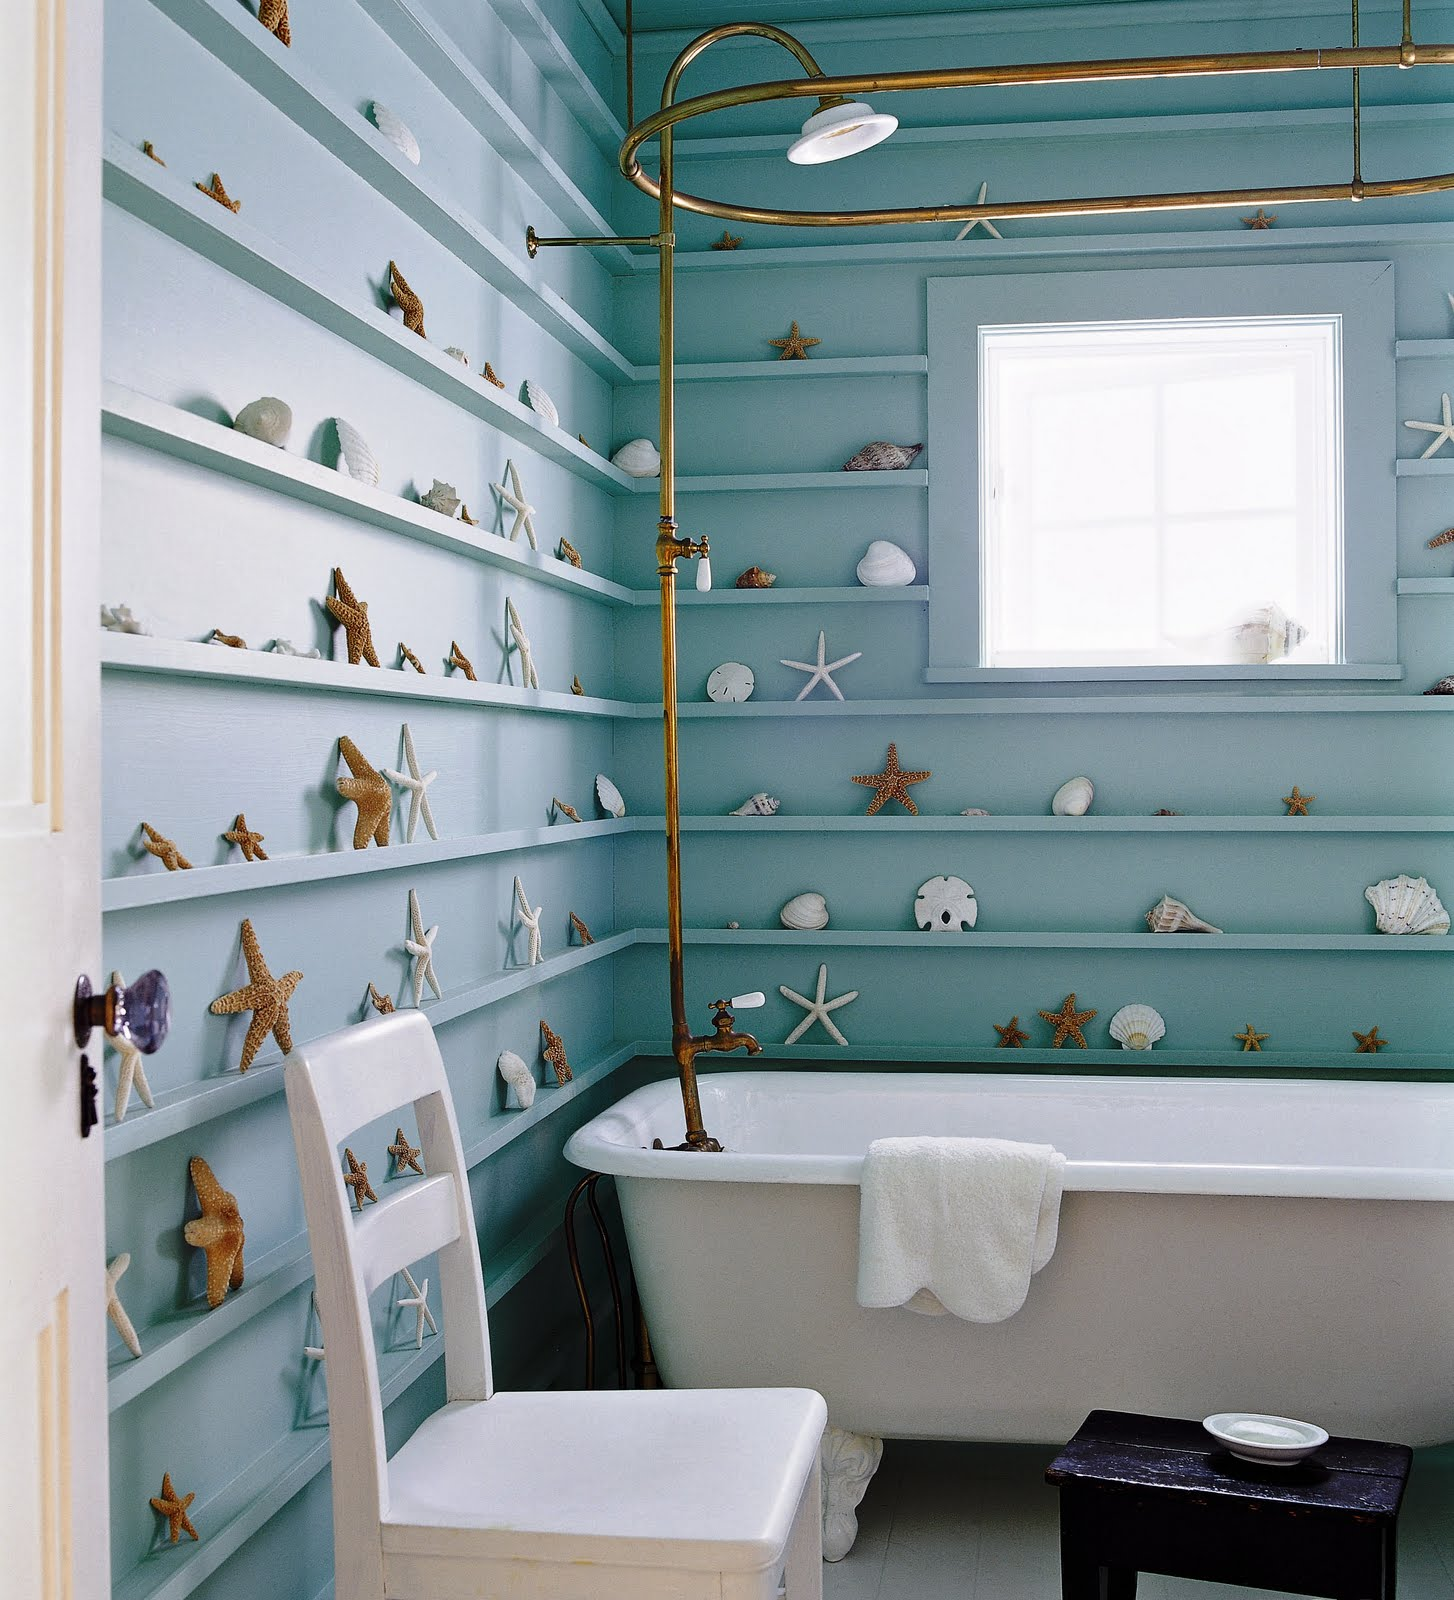 Ez decorating know how bathroom designs the nautical for Bathroom design and decor